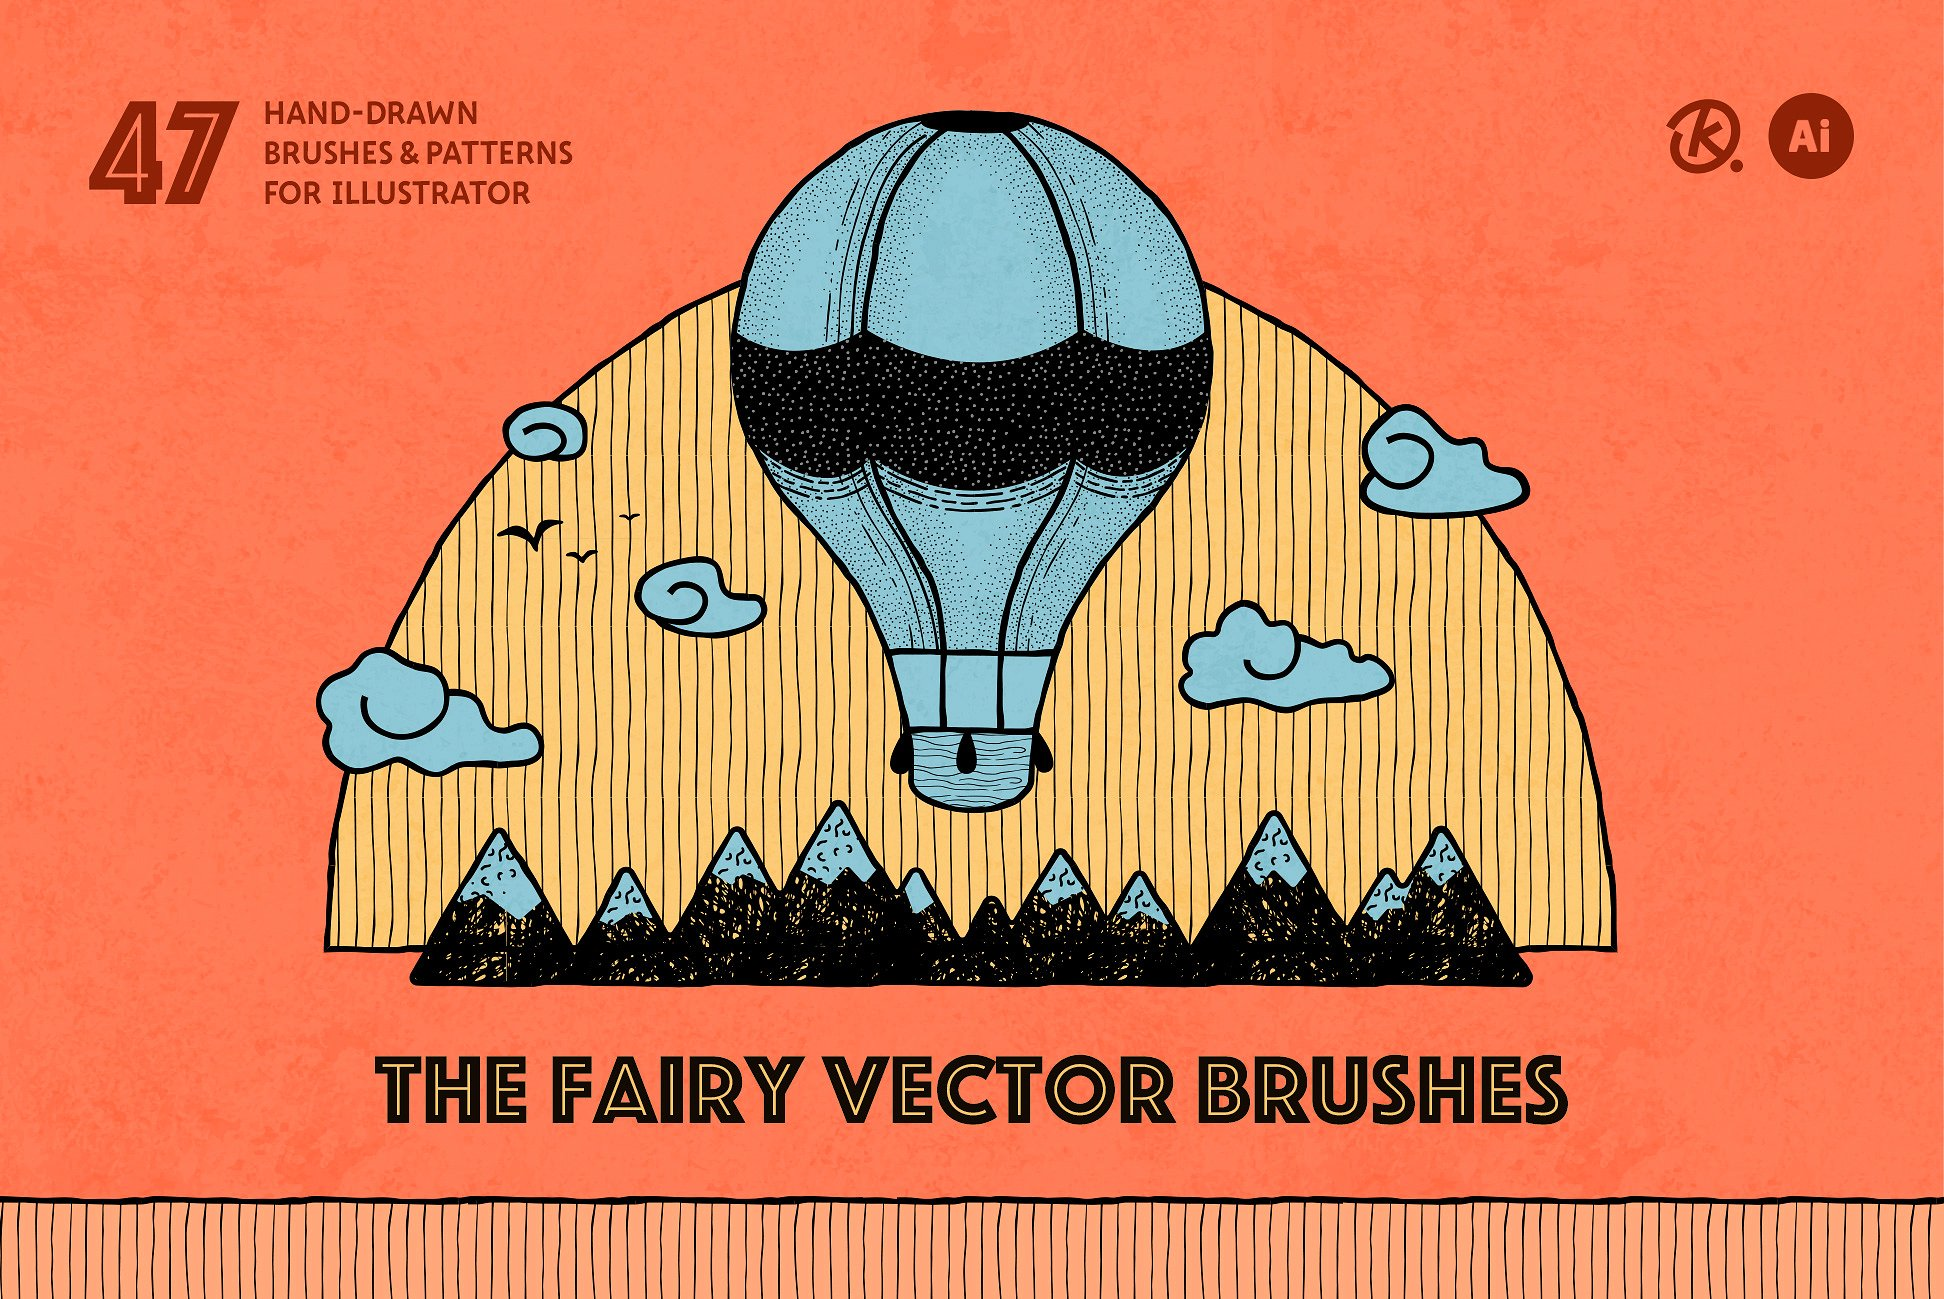 fairy-vector-brushes-cover